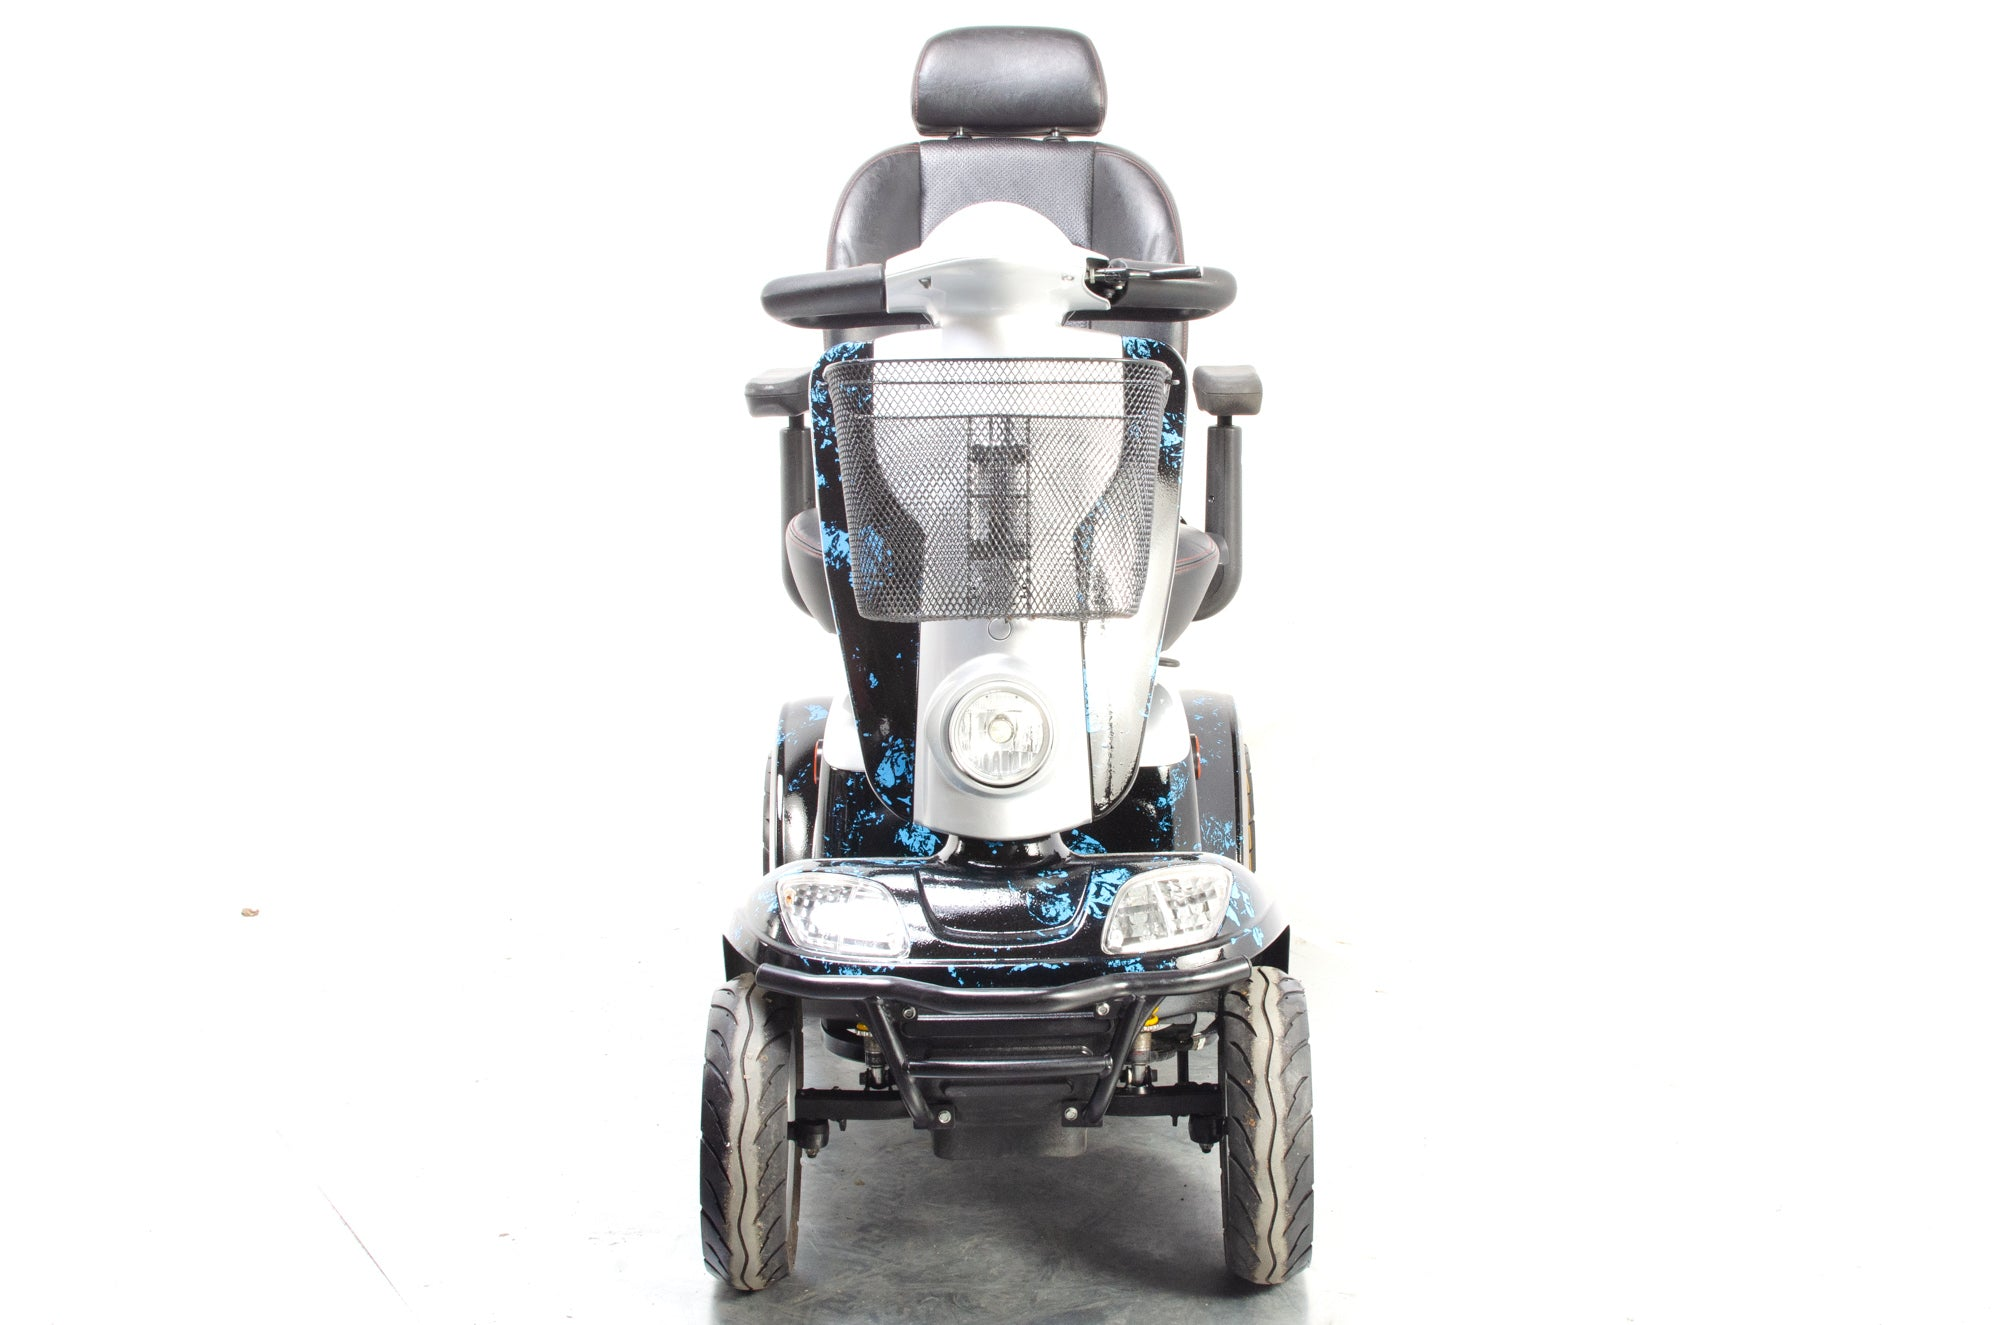 Kymco Maxi XLS Large Comfy Electric Mobility Scooter